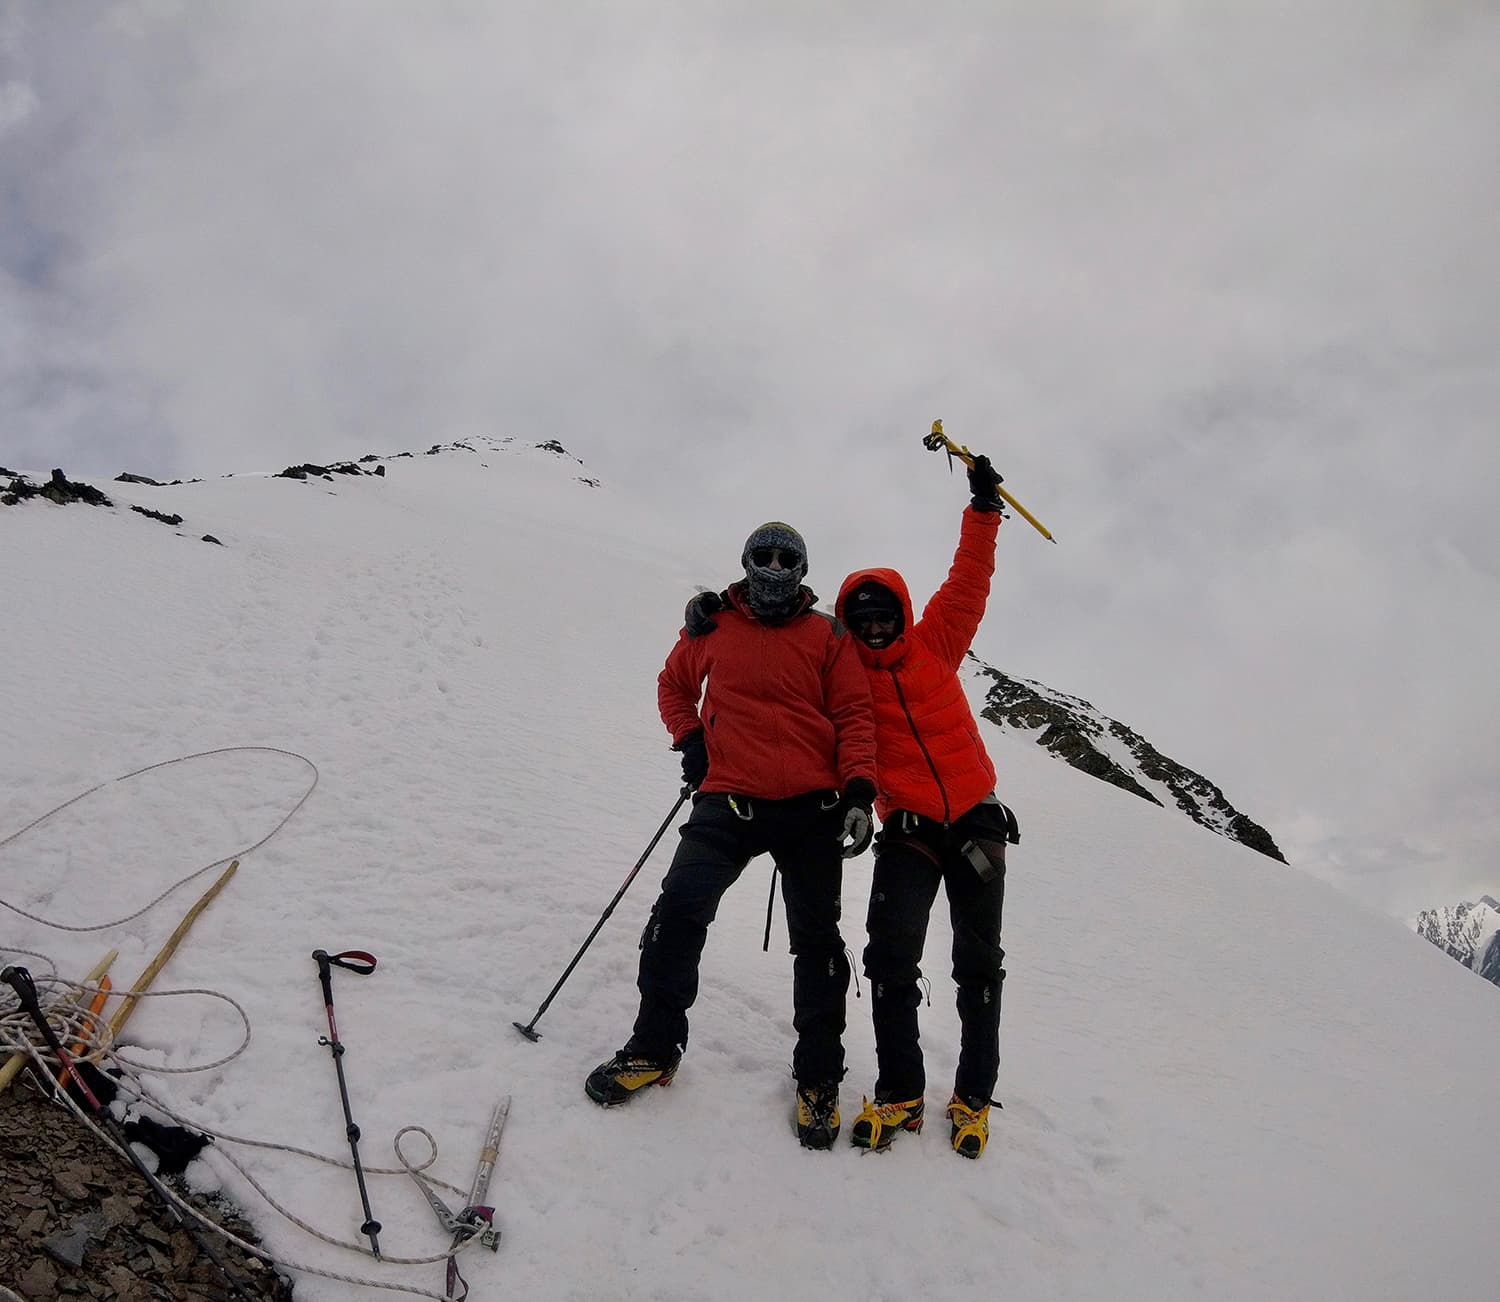 Day 7: A sigh of relief as we descend from the summit to cross the snow line back onto the rocky terrain.